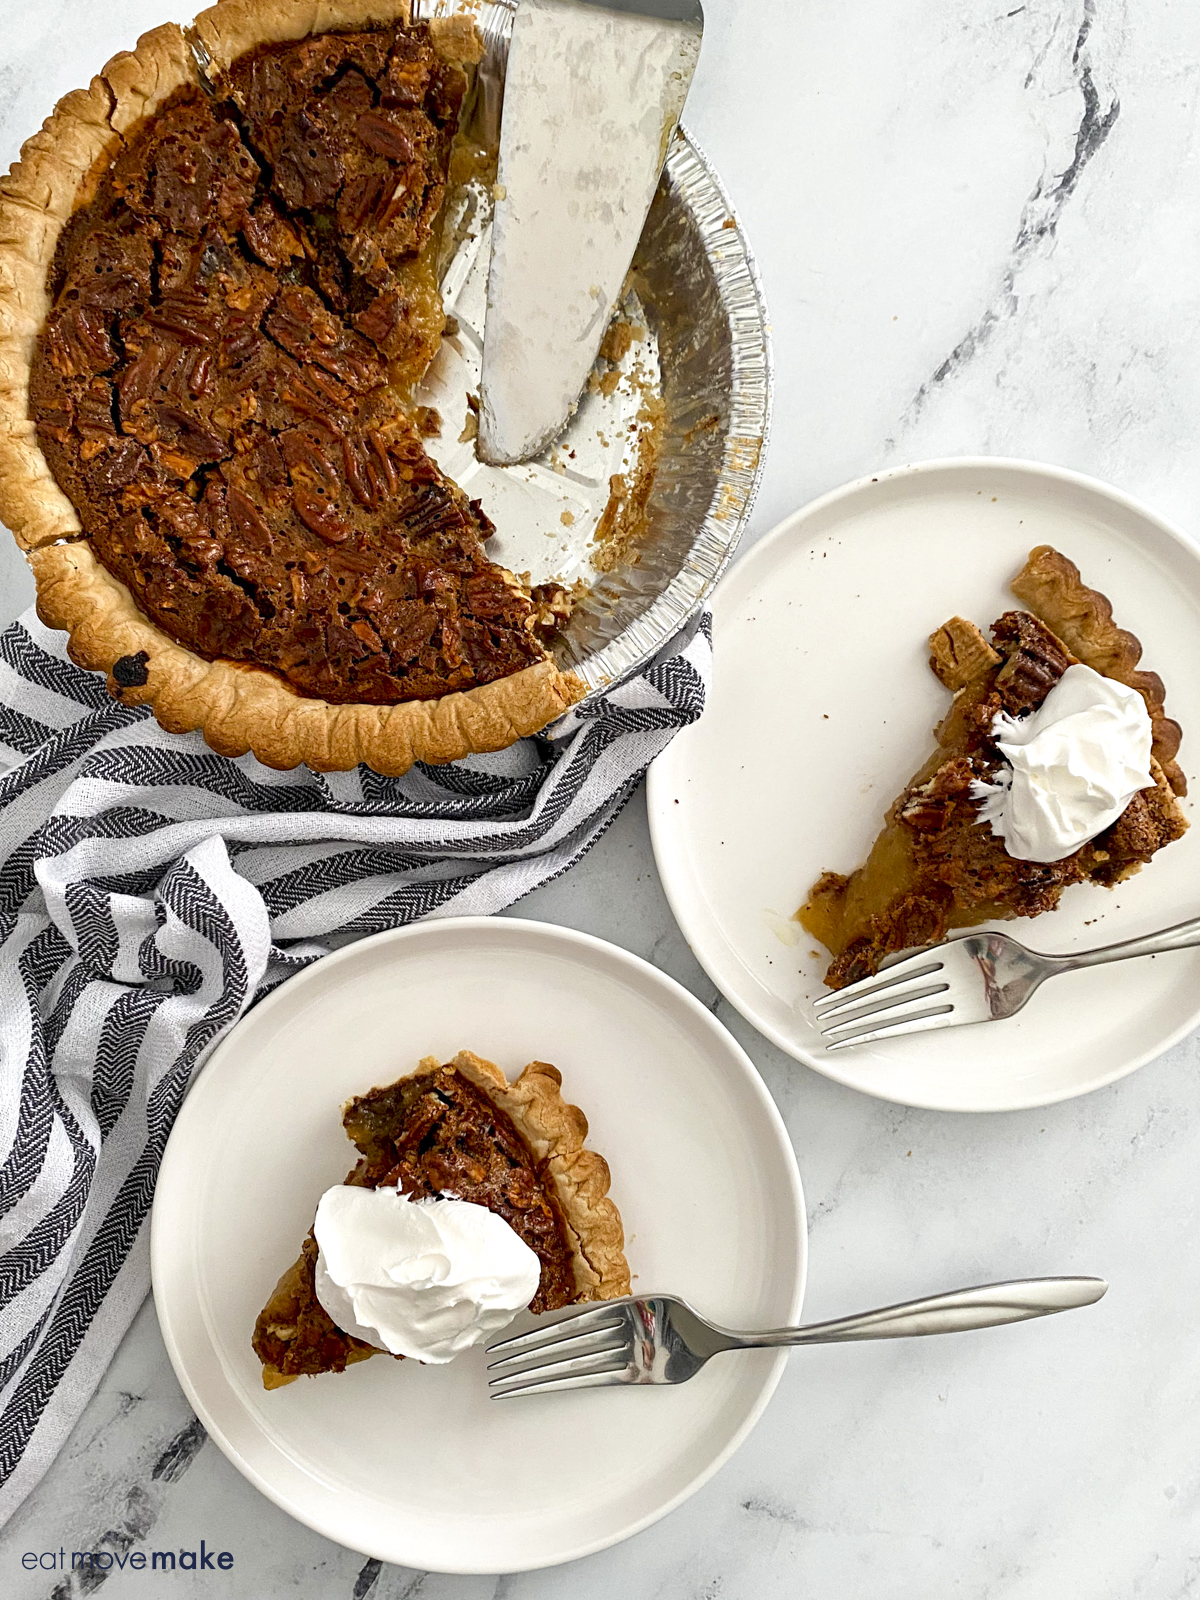 slices of pecan pudding pie on plates